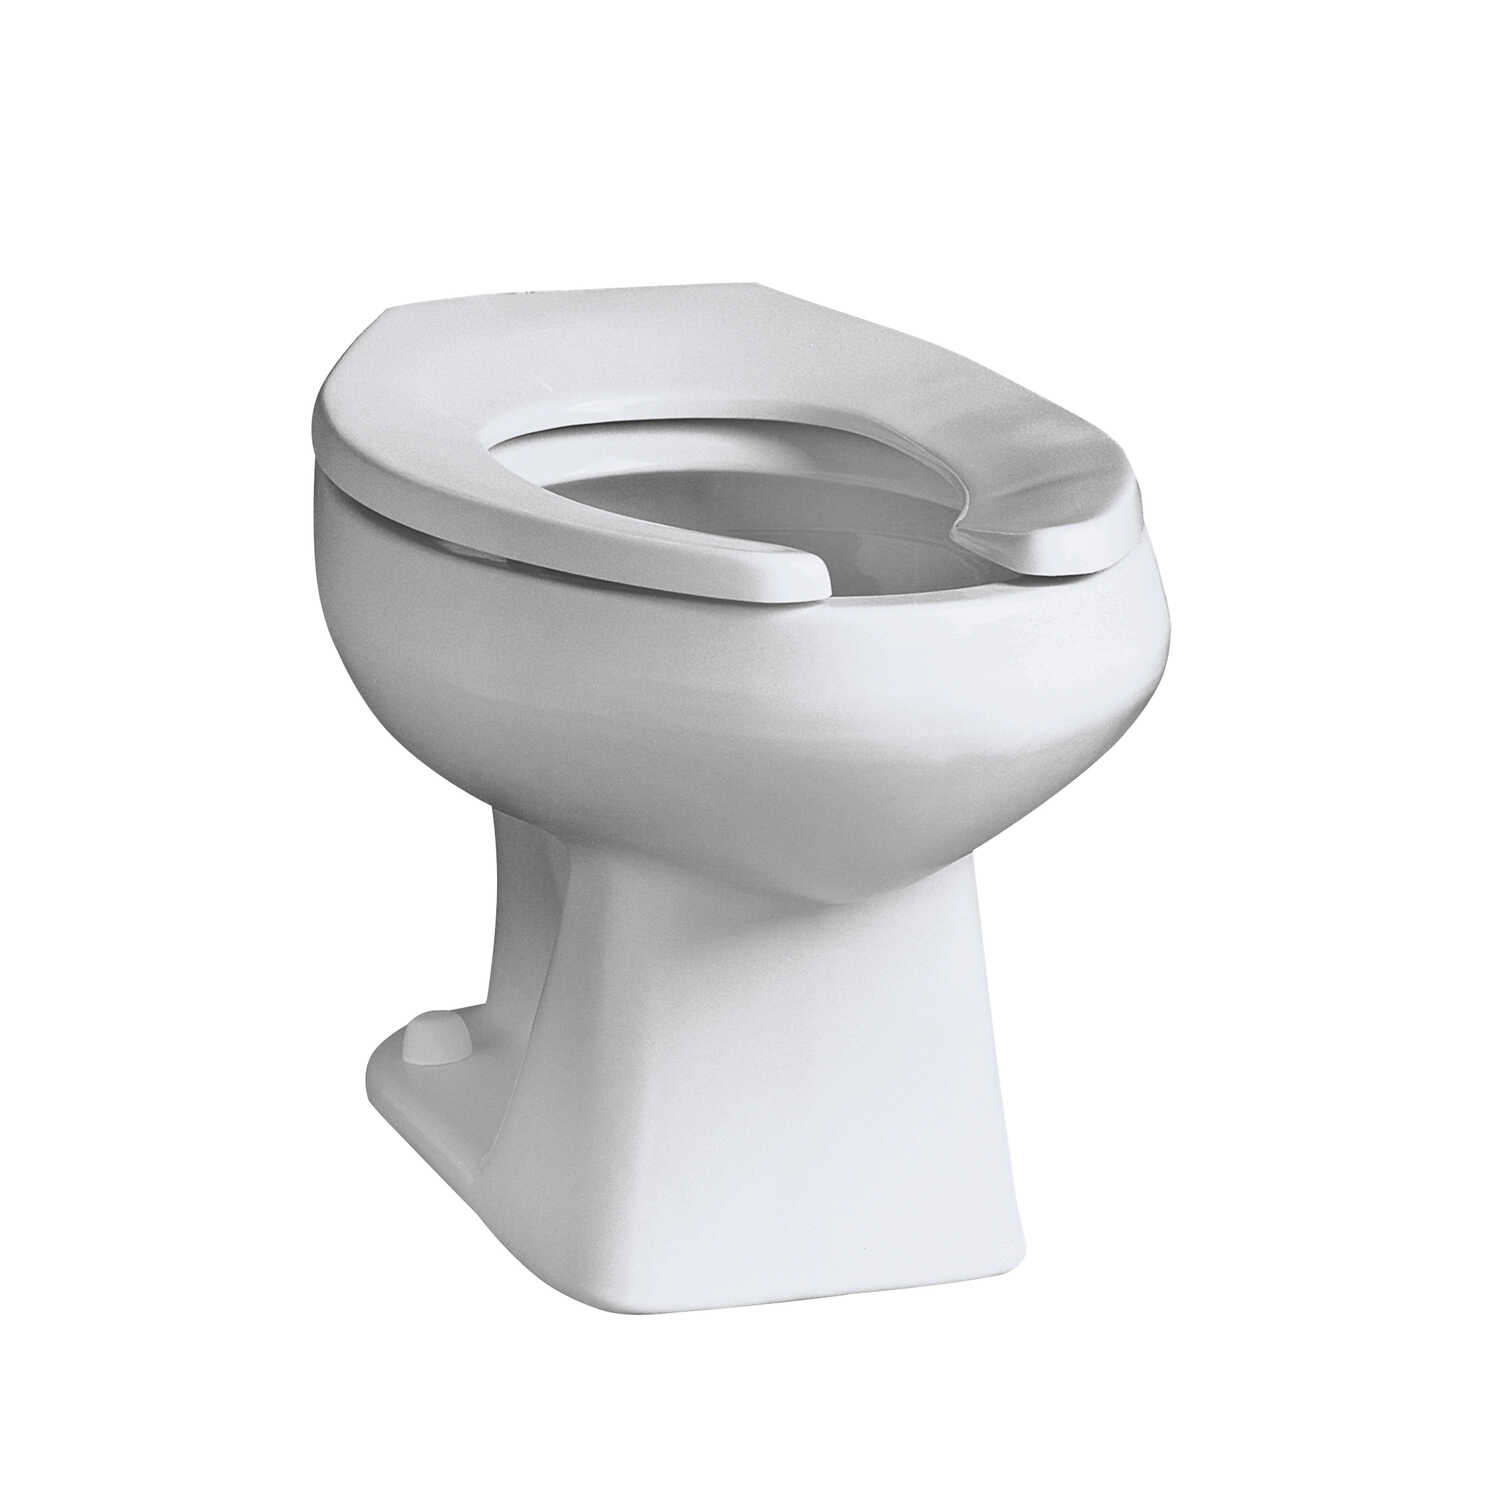 Mansfield  Elongated  Toilet Bowl  1.6 gal. White